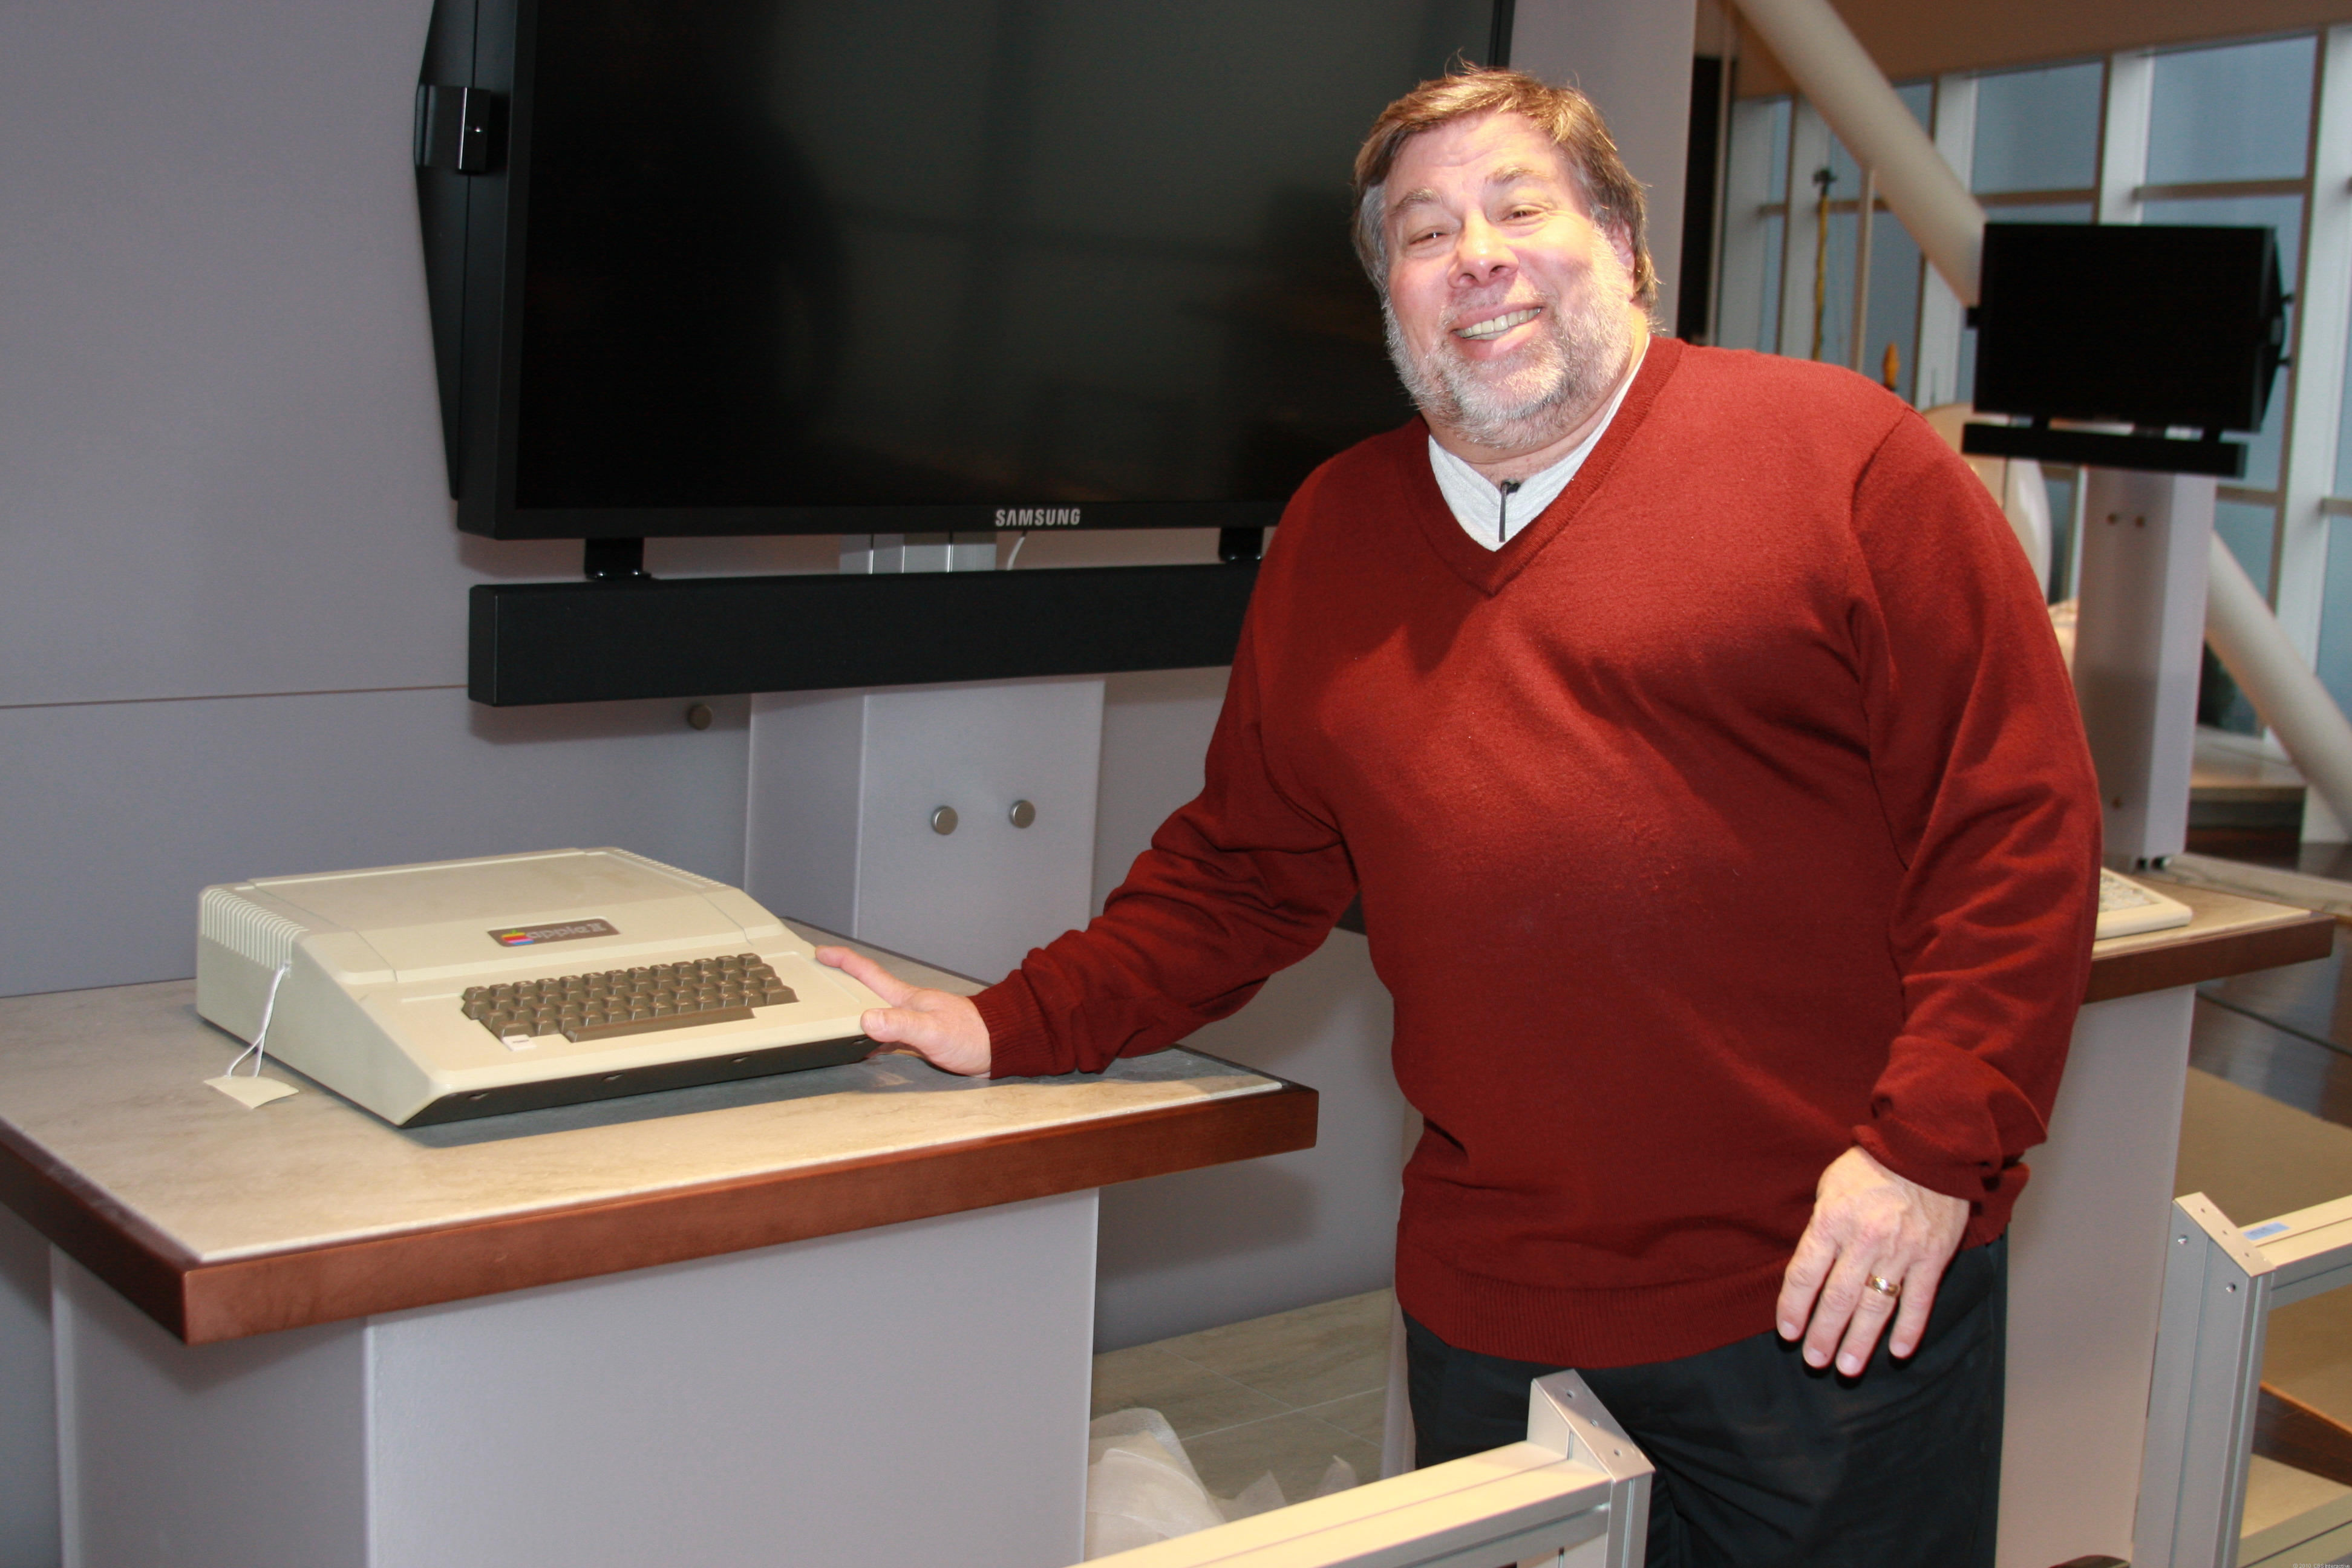 Steve Wozniak with his famed creation, the Apple II computer, at the Computer History Museum in Mountain View.